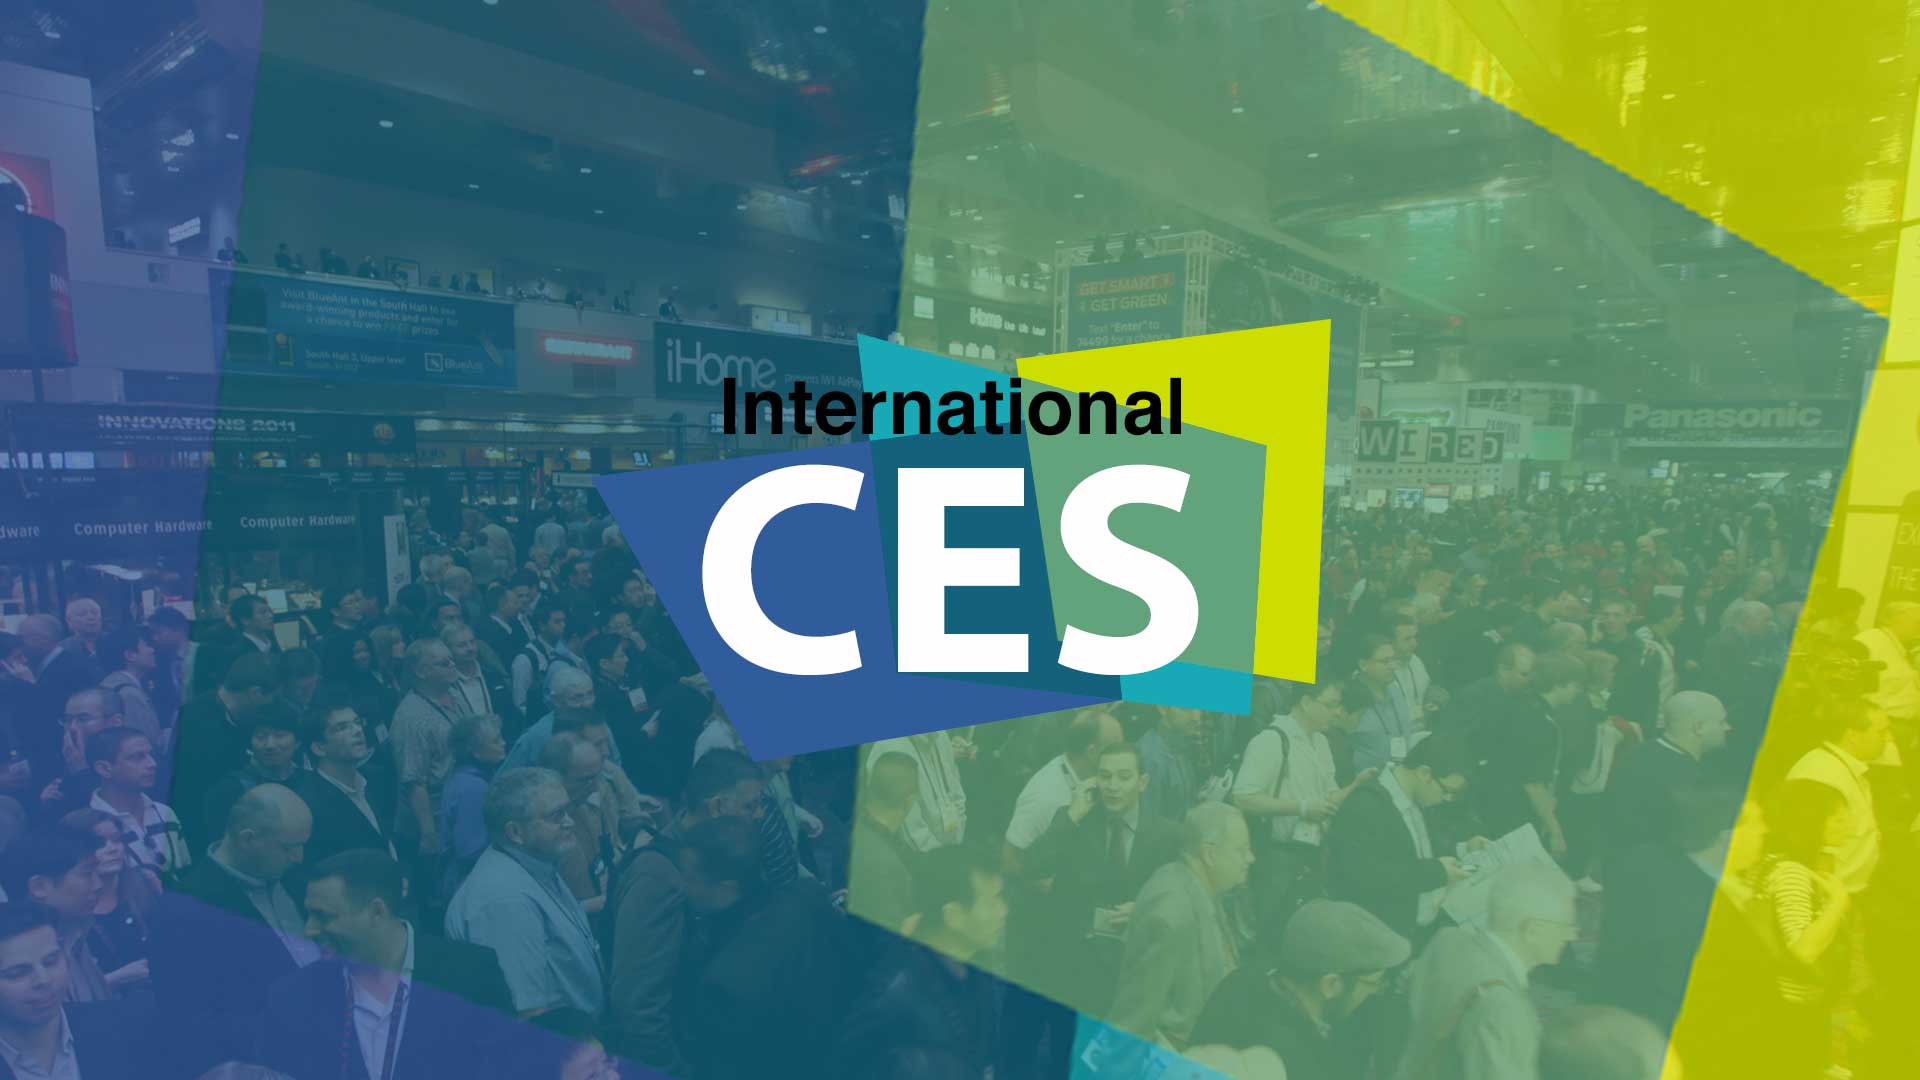 Searching For CES 2017 Schedule? Well, Here it is 2